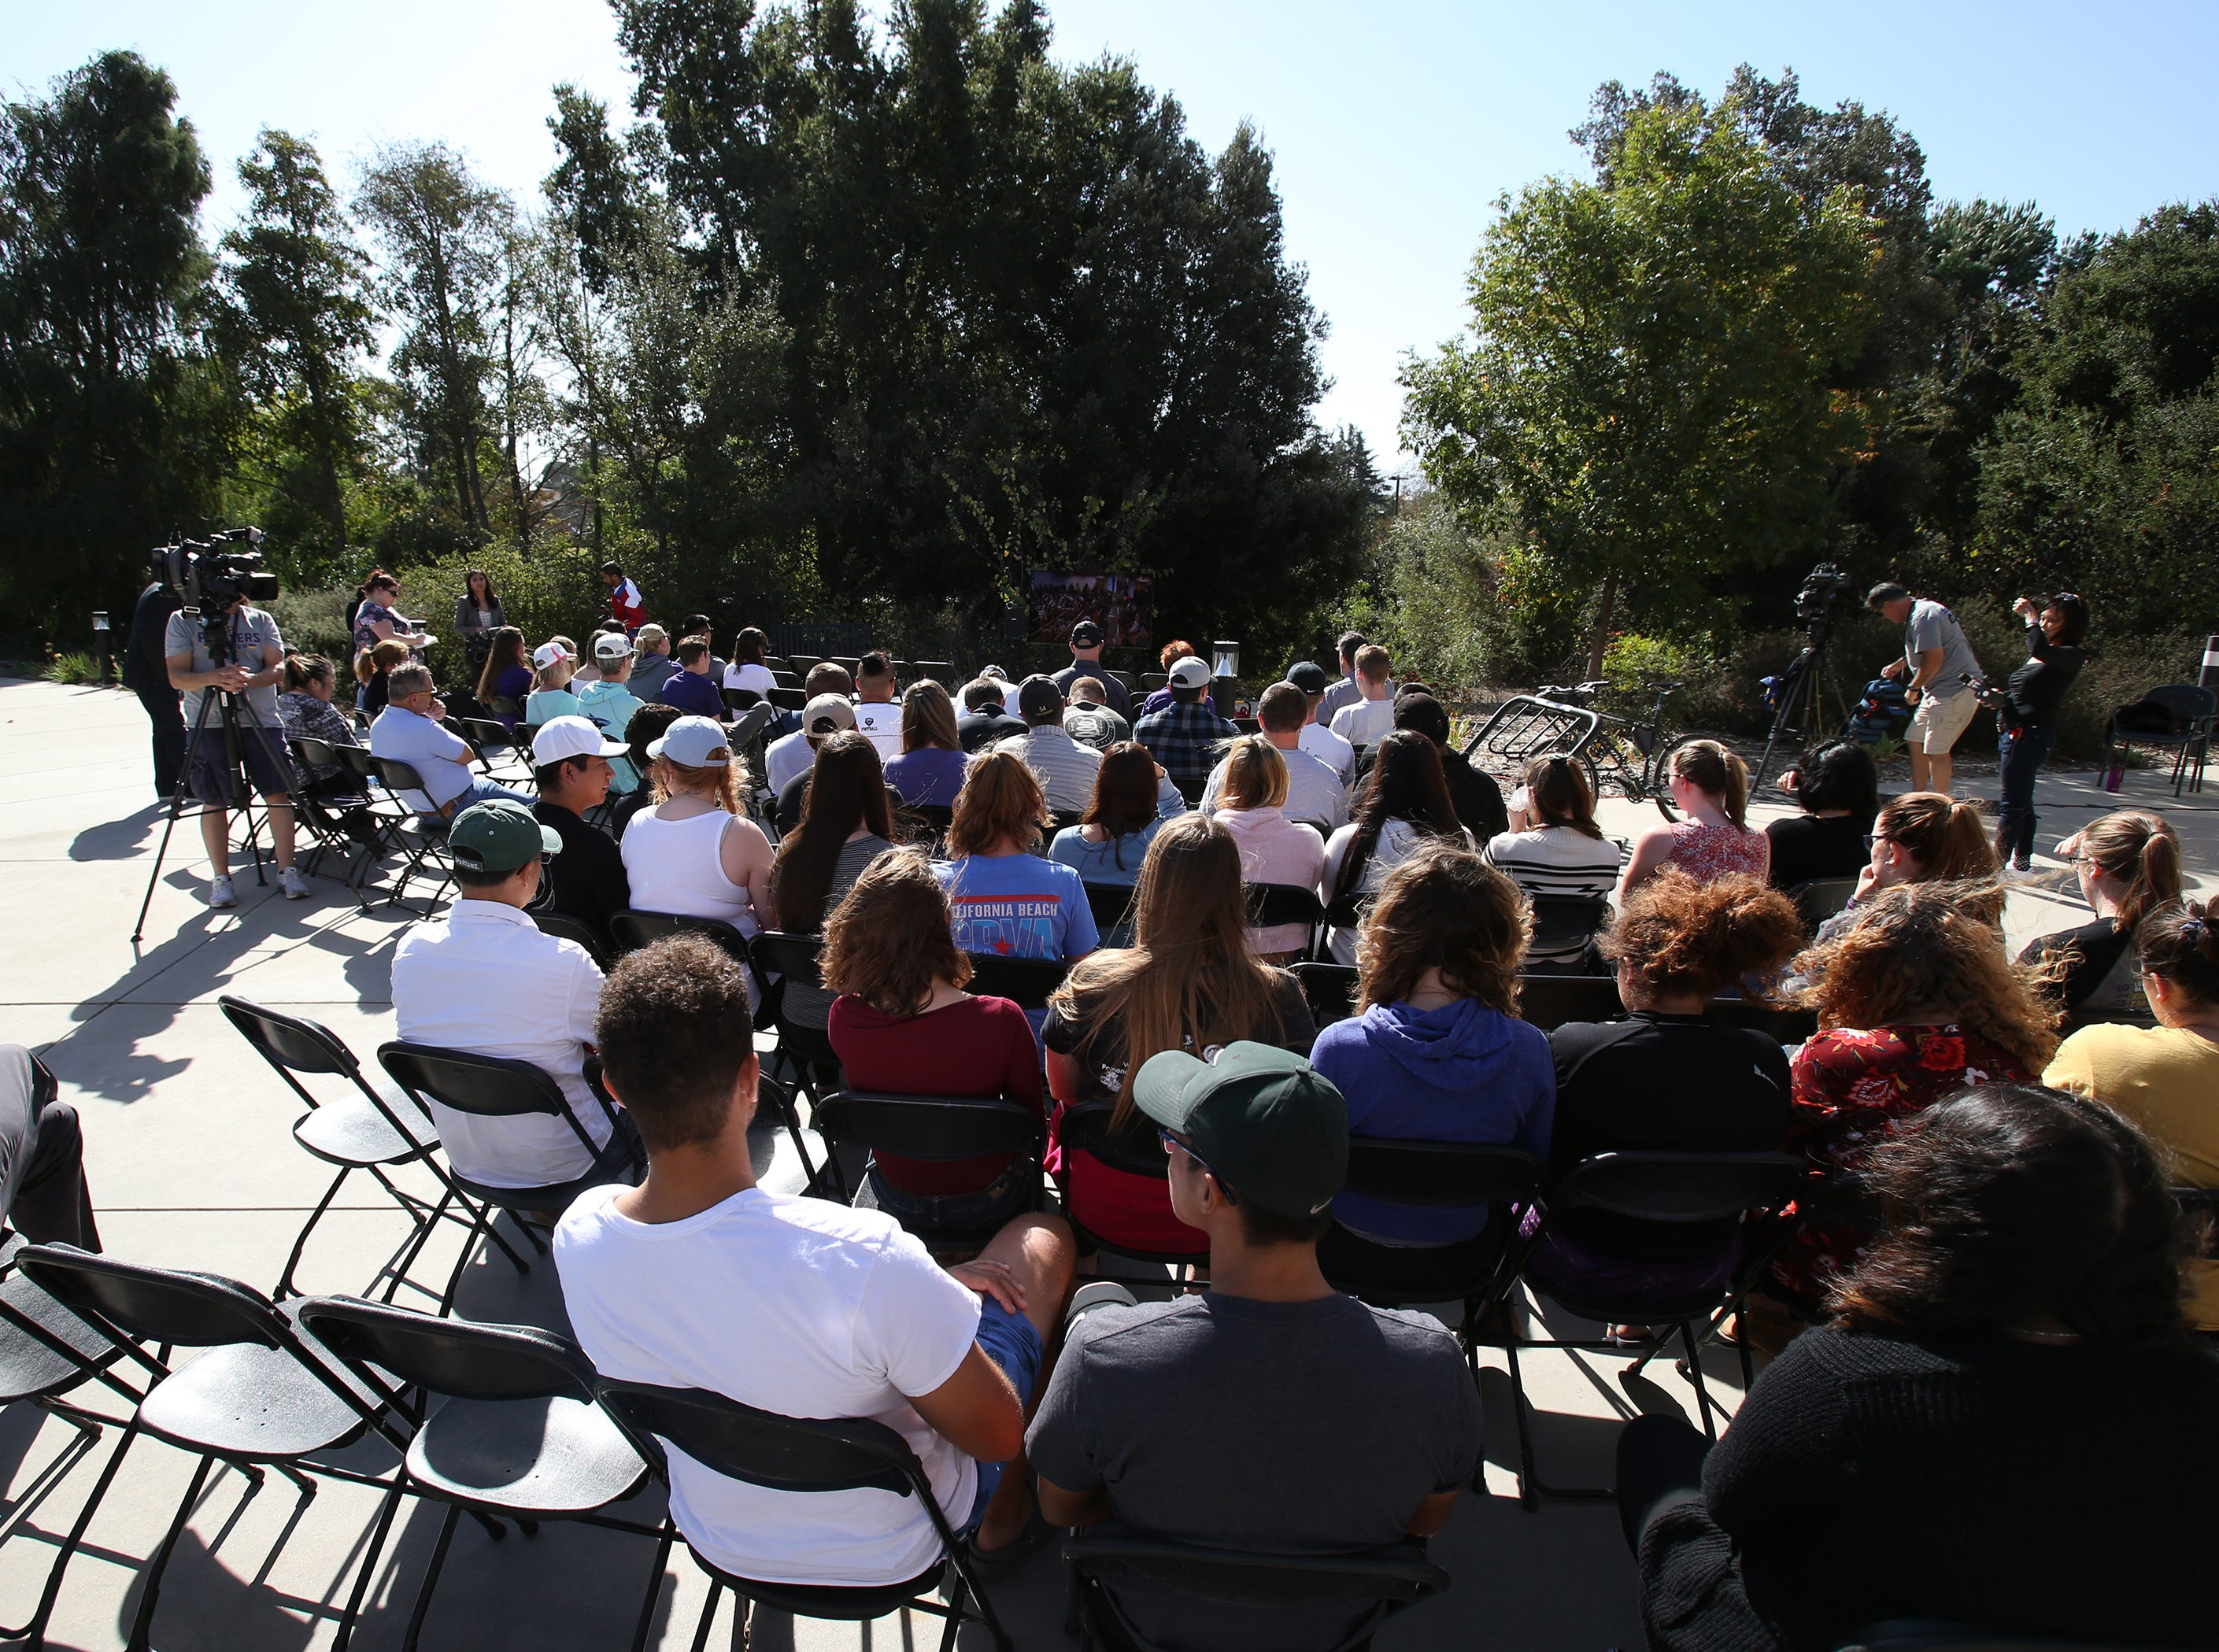 Cal Lutheran students, faculty and members of the community gather at the university chapel for the service Thursday held for the victims of the Borderline Bar Borderline Bar & Grill shooting. This was an overflow area for those who could not get into the main chapel.